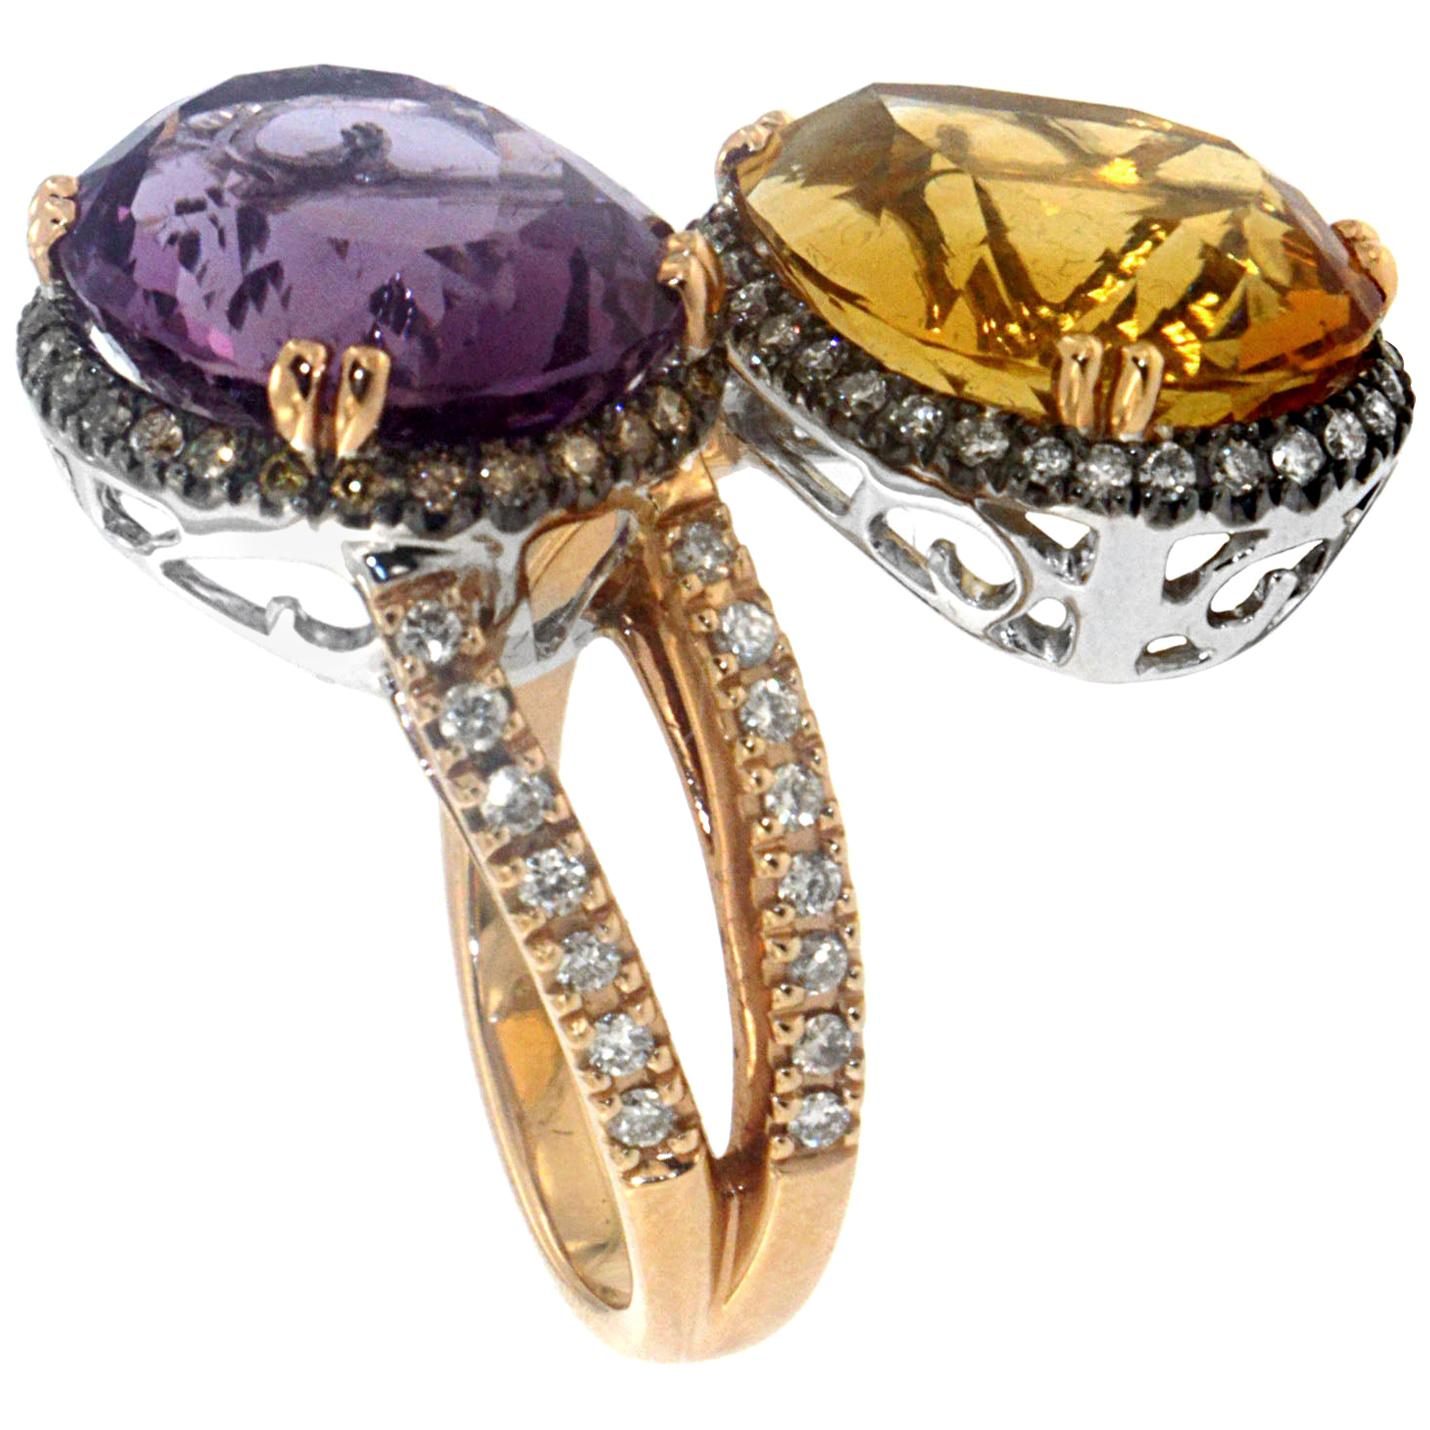 Zorab Creation Amethyst and Citrine Coupling Ring